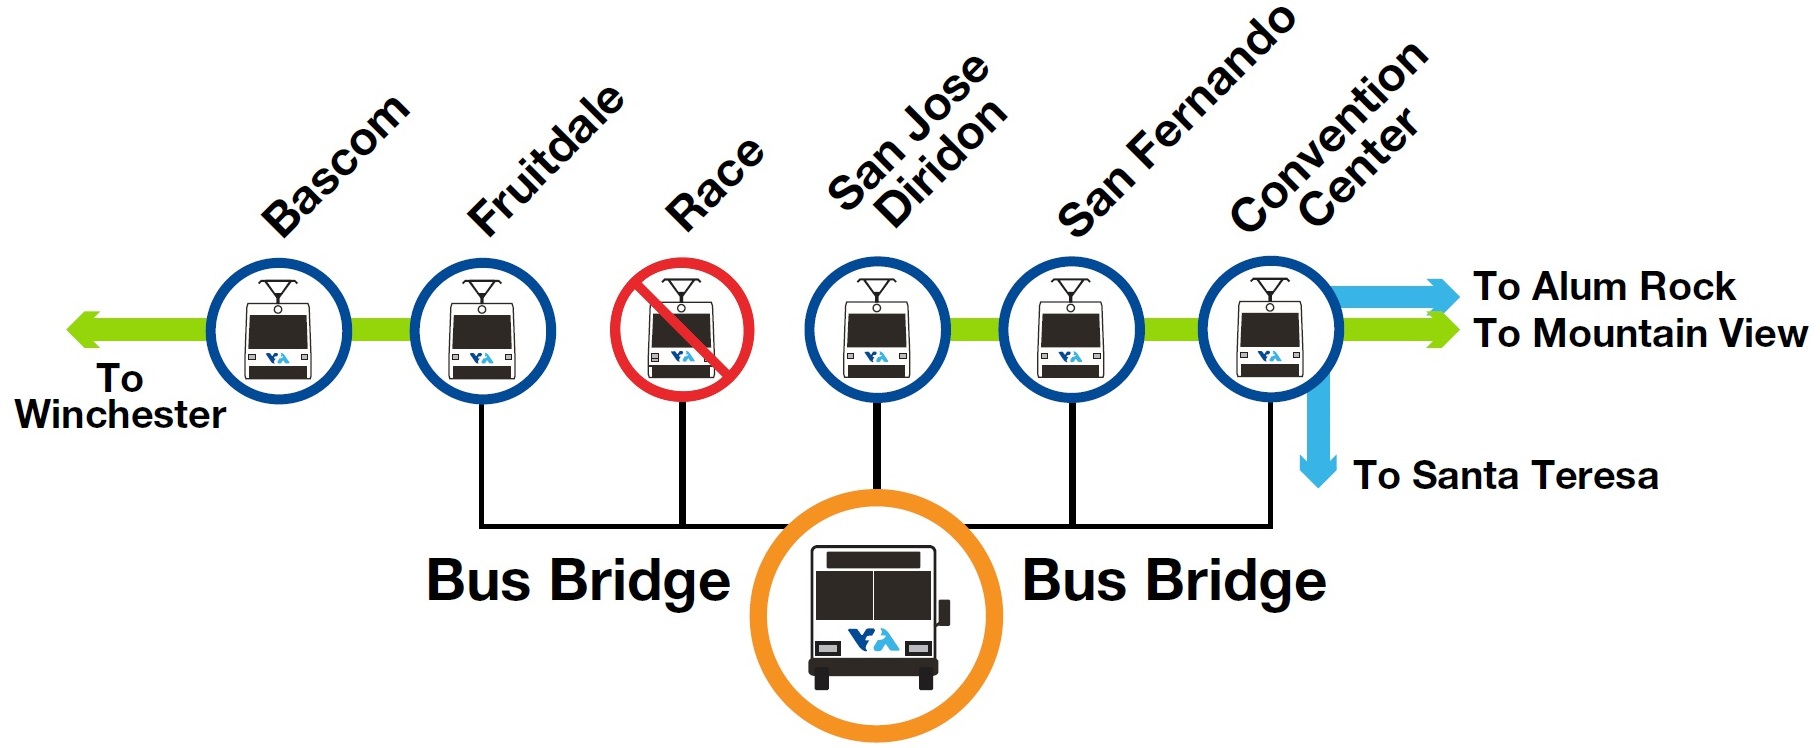 VTA will operate a bus bridge between the Fruitdale and Convention Center stations. A bus bridge will serve Fruitdale, Race, San Jose Diridon, San Fernando, and Convention Center light rail stations.